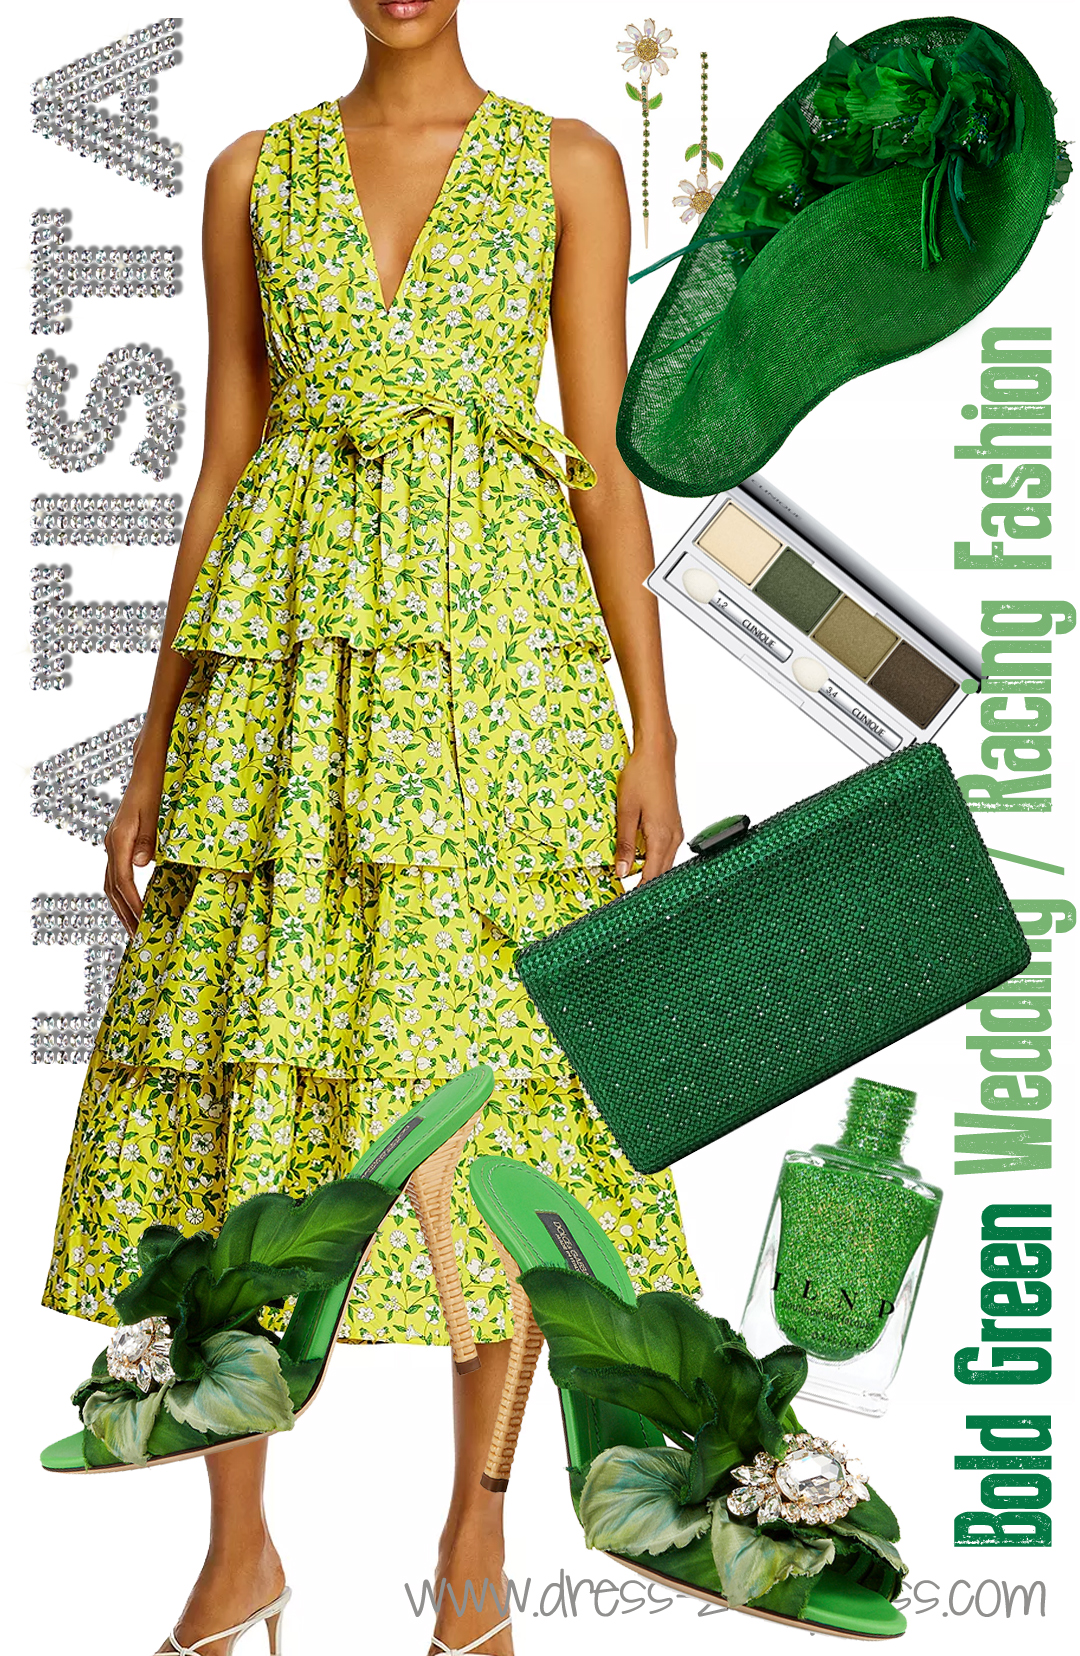 How to Wear Green 2020. Floral outfits for Kentucky Derby 2020. What to wear with a Green Dress. How to wear Green. Green outfit ideas 2020. What to wear for a Summer wedding 2020. Green Floral Kentucky Derby Outfit 2020. What to wear for a day at the Races 2020.